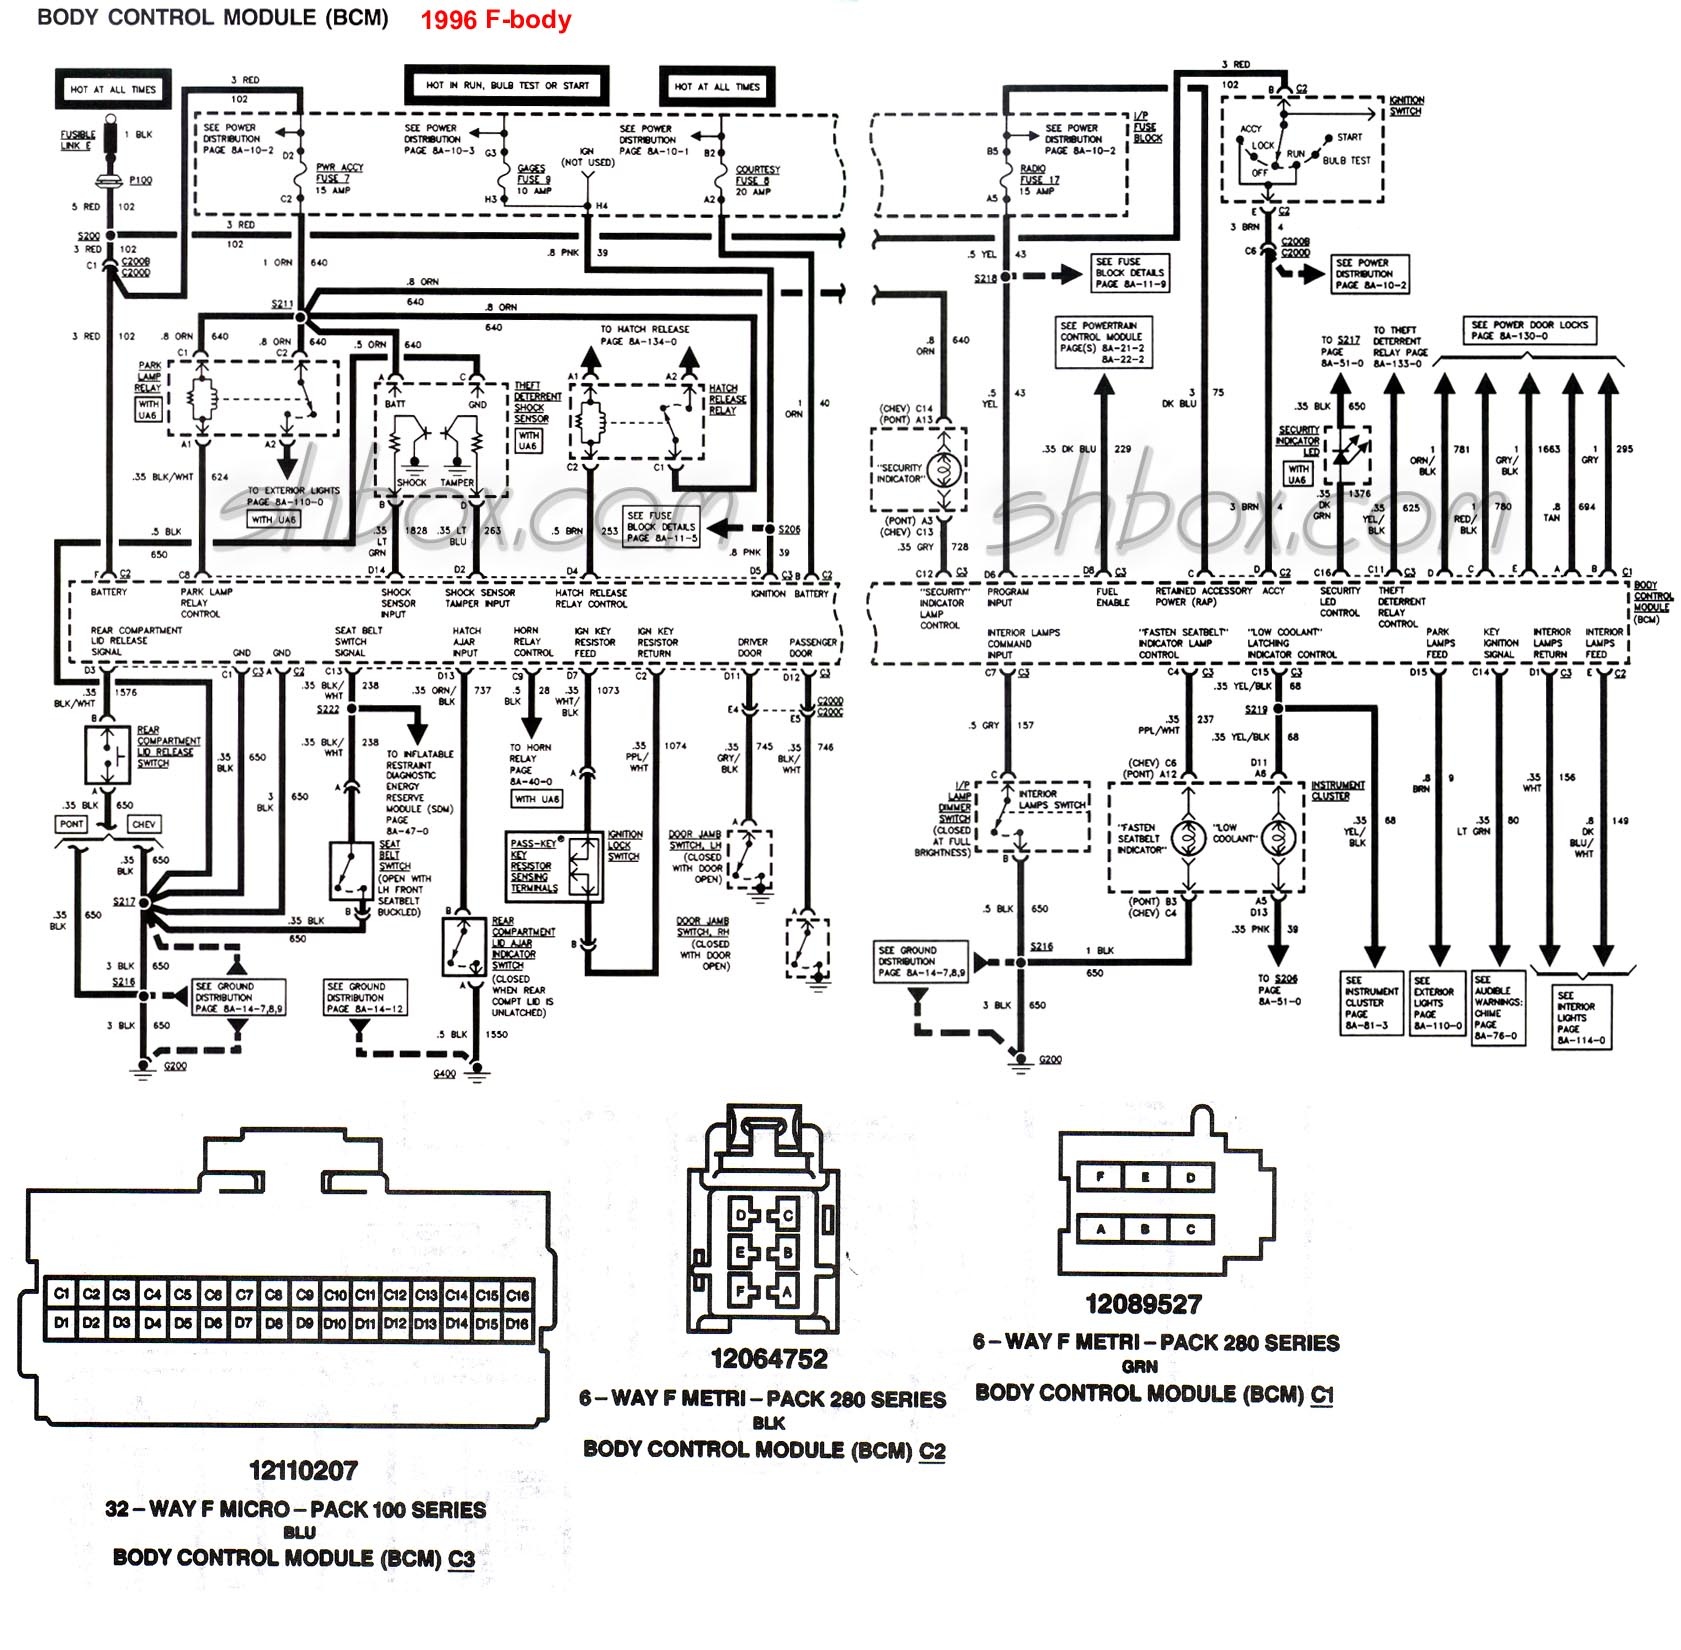 hight resolution of 4th gen lt1 f body tech aids 69 camaro wiring diagram 1996 camaro wiring diagram